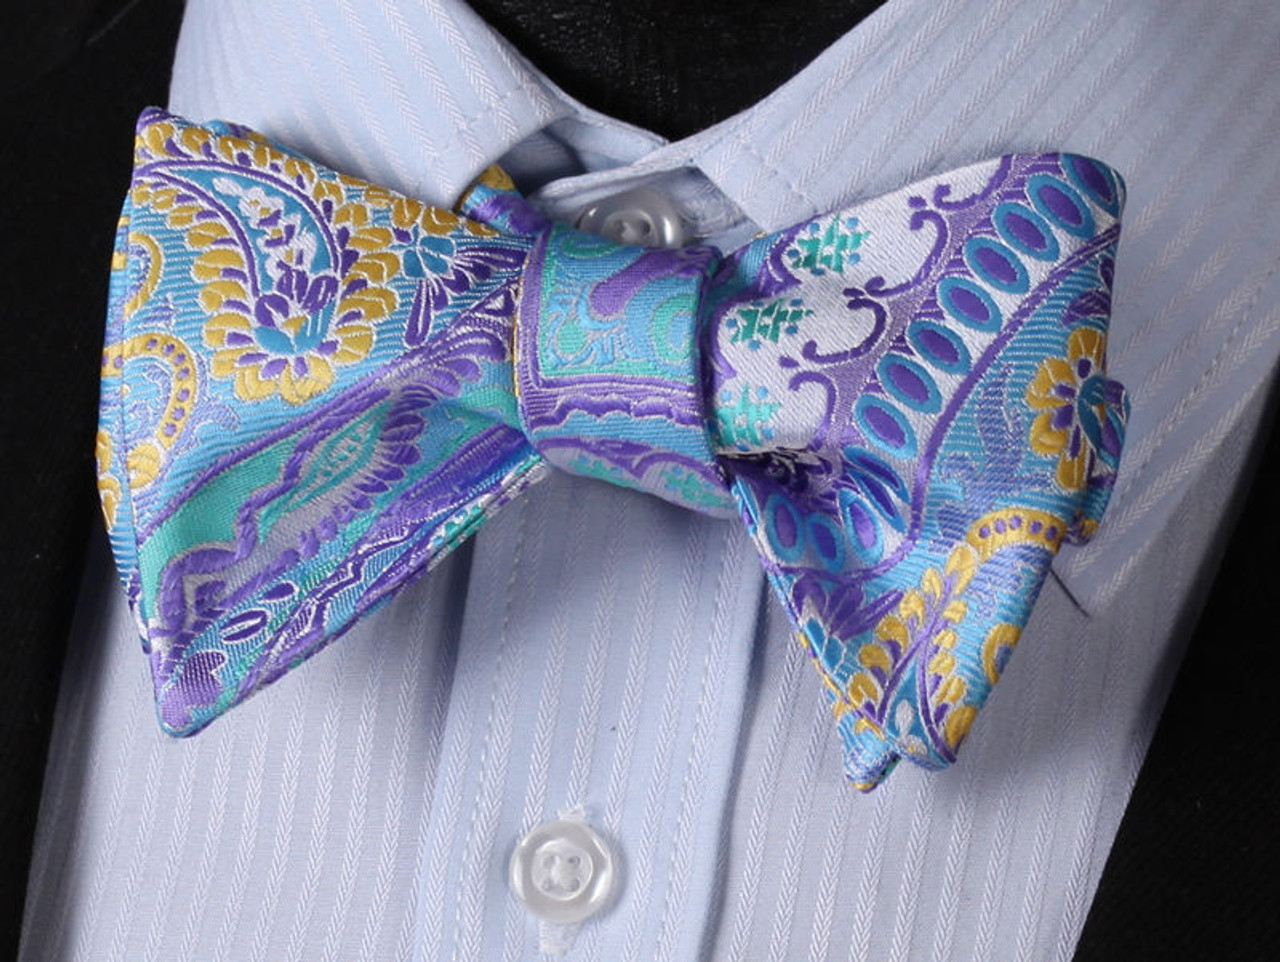 73028cd391e1 Silver with purple, blue and gold floral and paisley pattern bow tie set. -  Got Knot